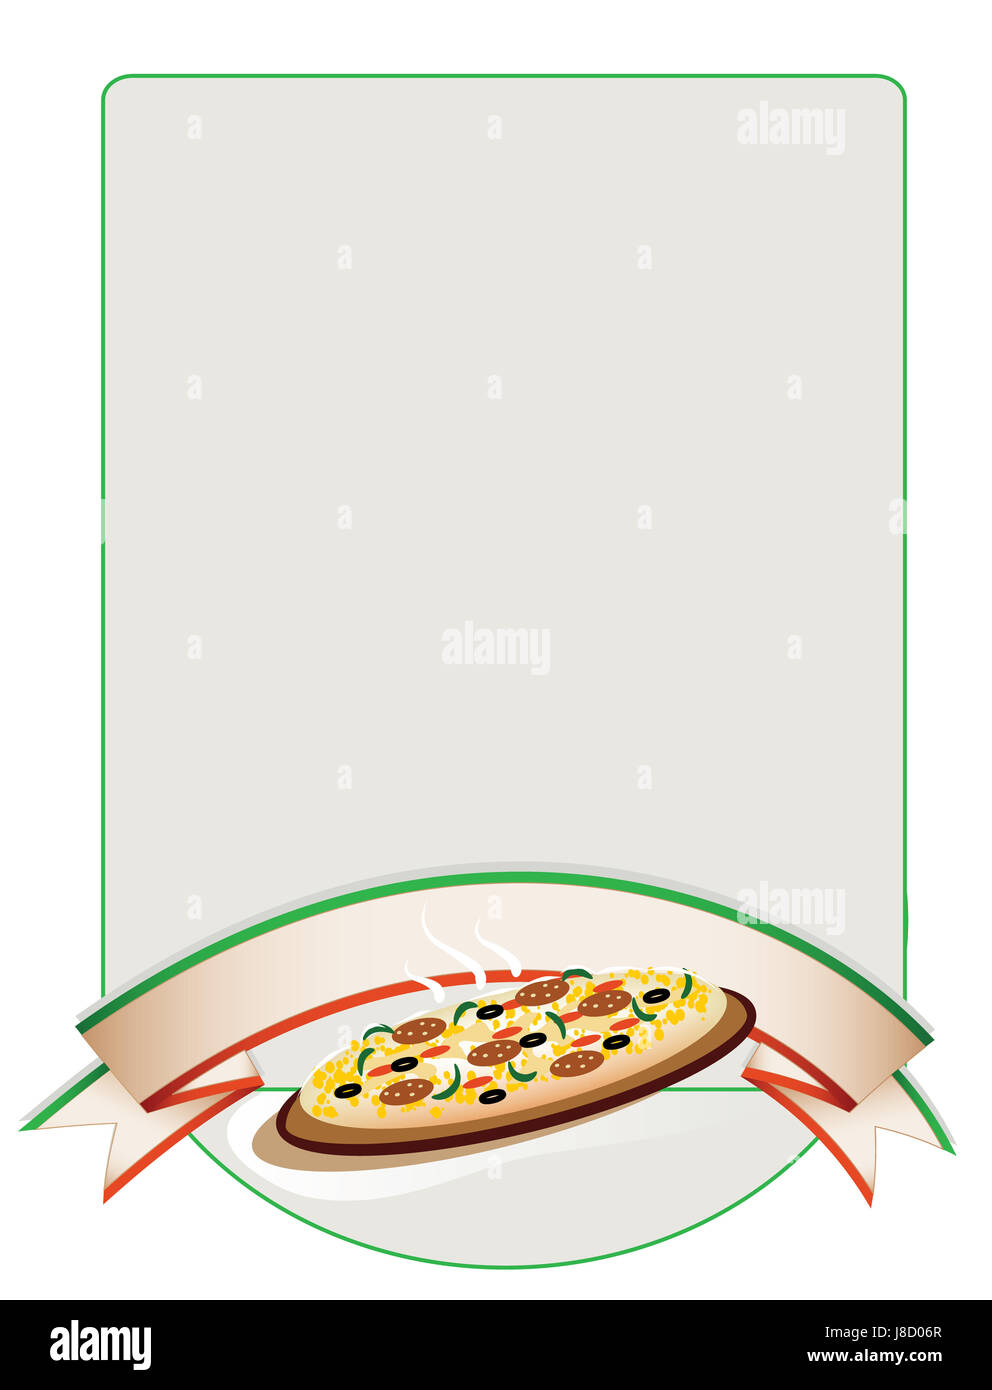 food, aliment, graphic, illustration, pizza, card, banner, pizzeria, - Stock Image